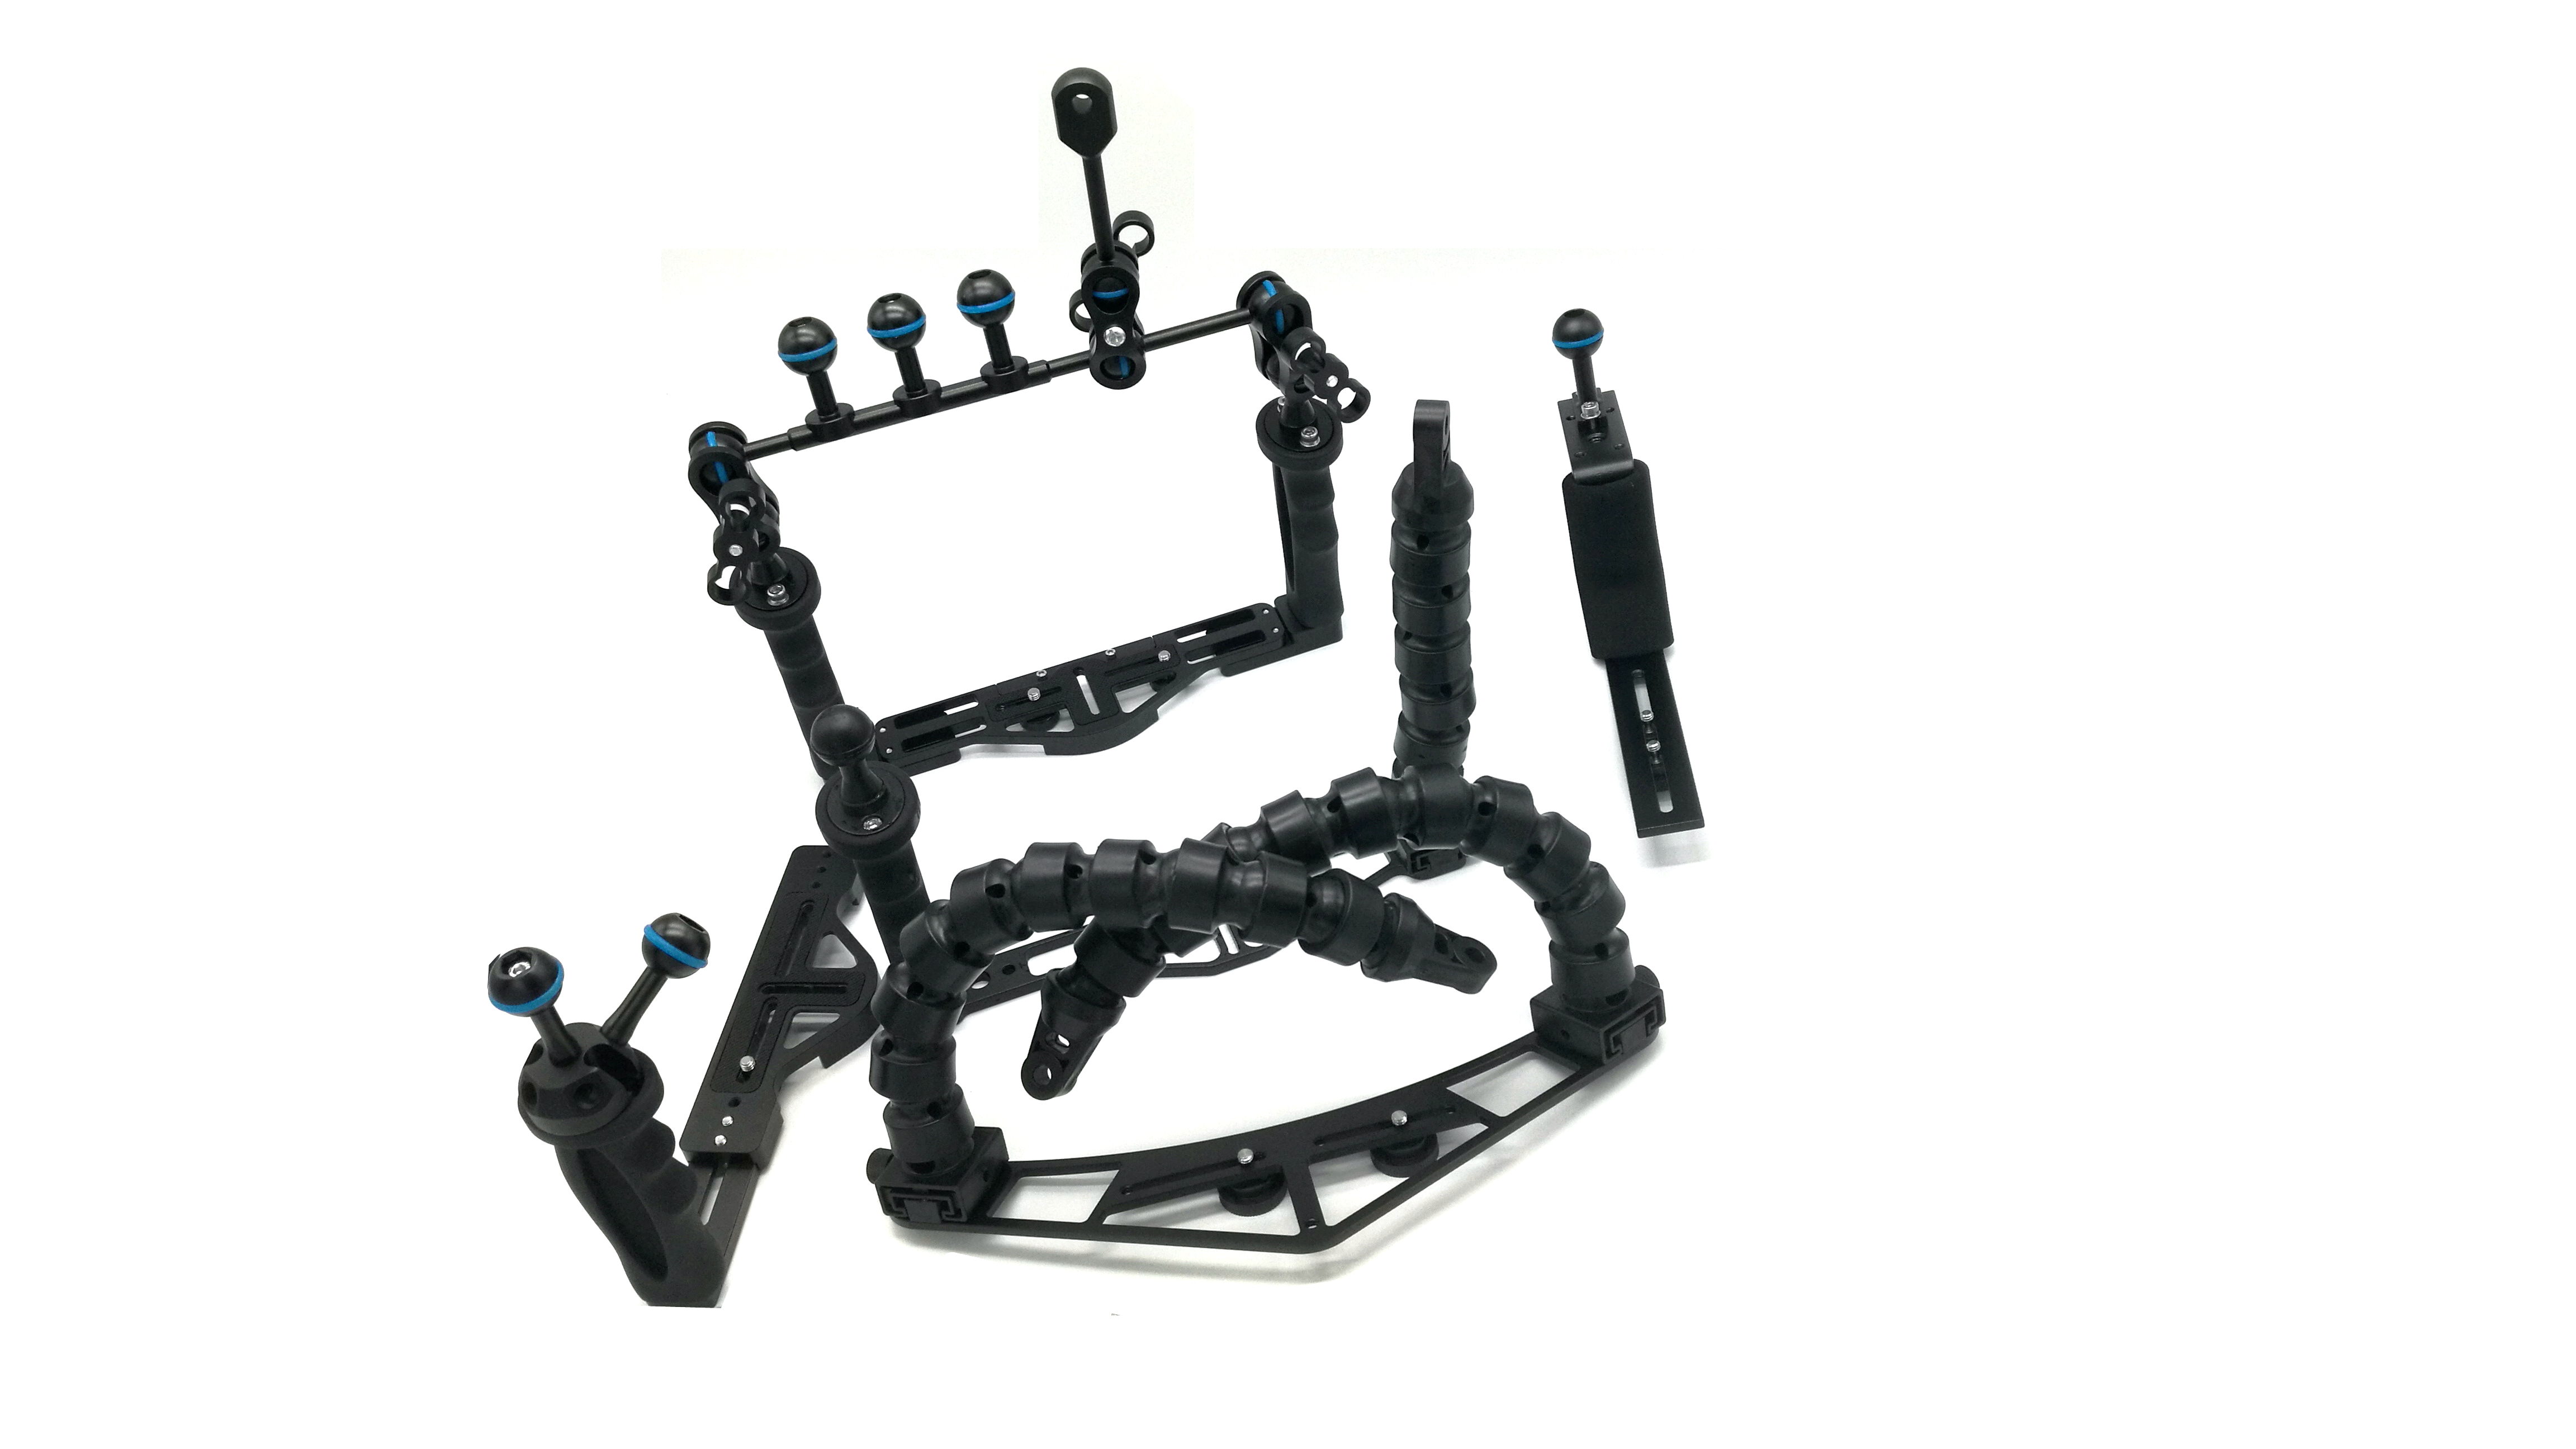 Leoben Underwater Tray & Arm Packages for Underwater Housings